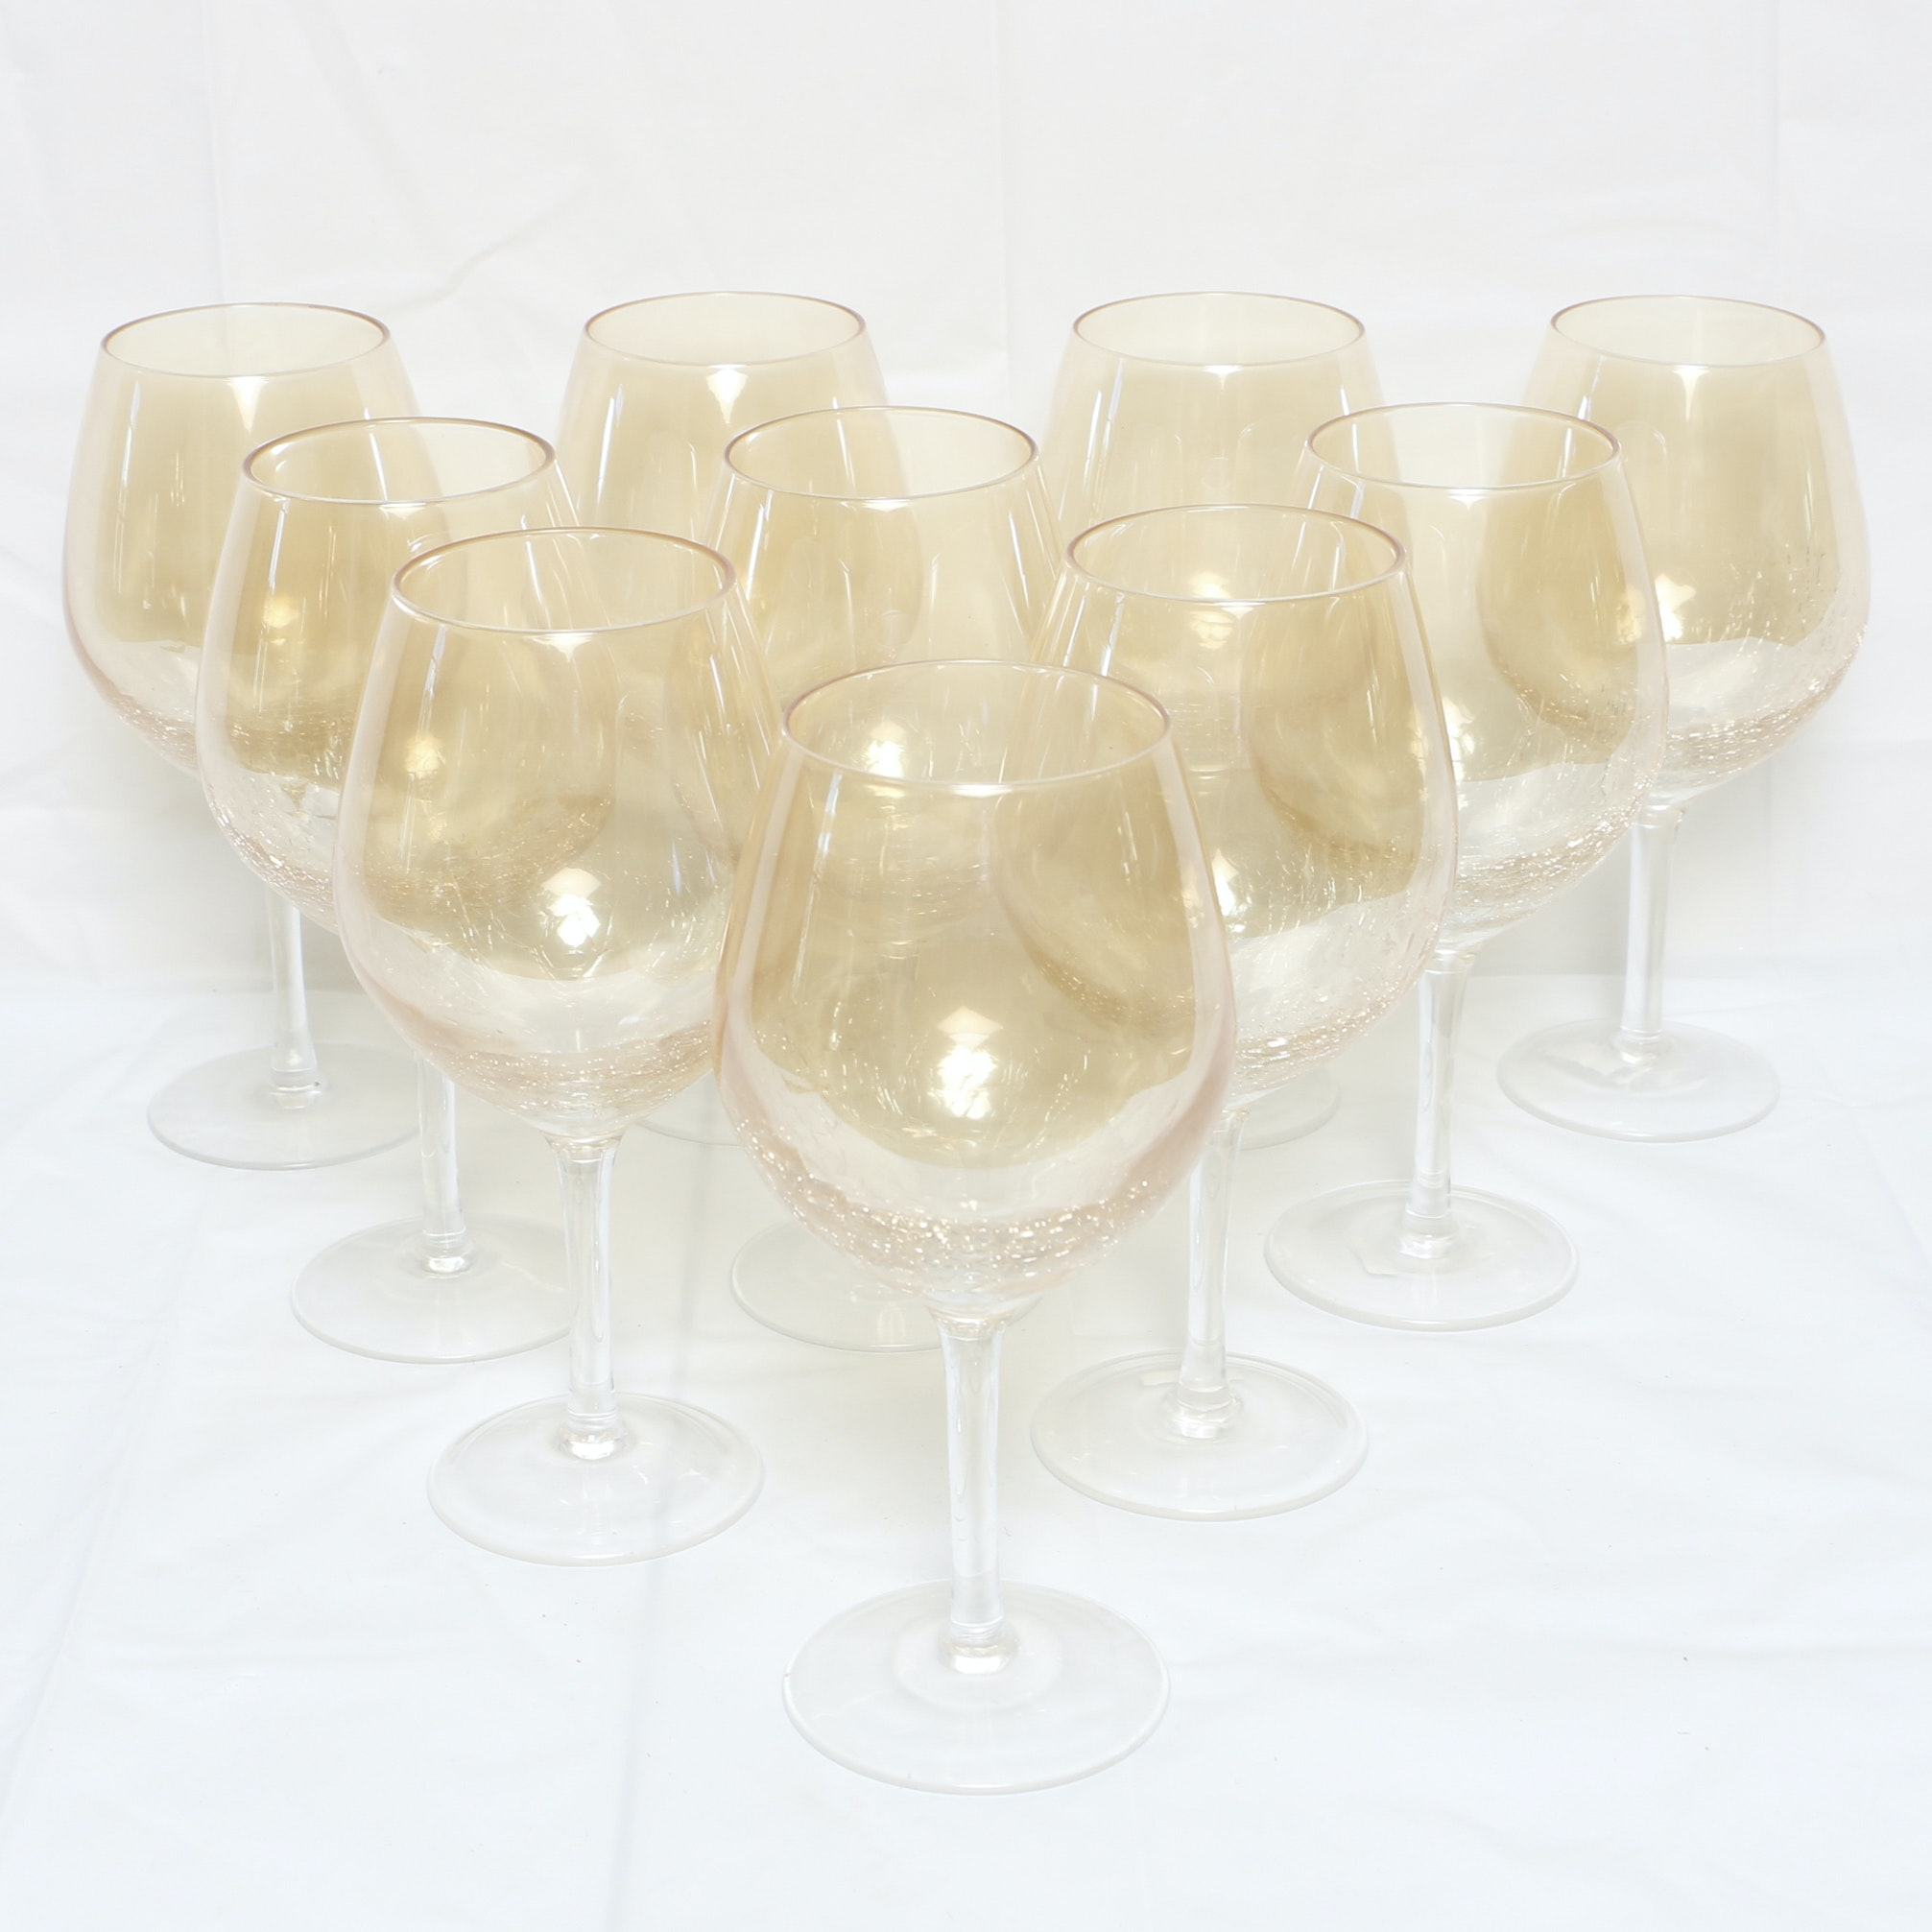 Stemmed Wine Glasses with Crackle Finish